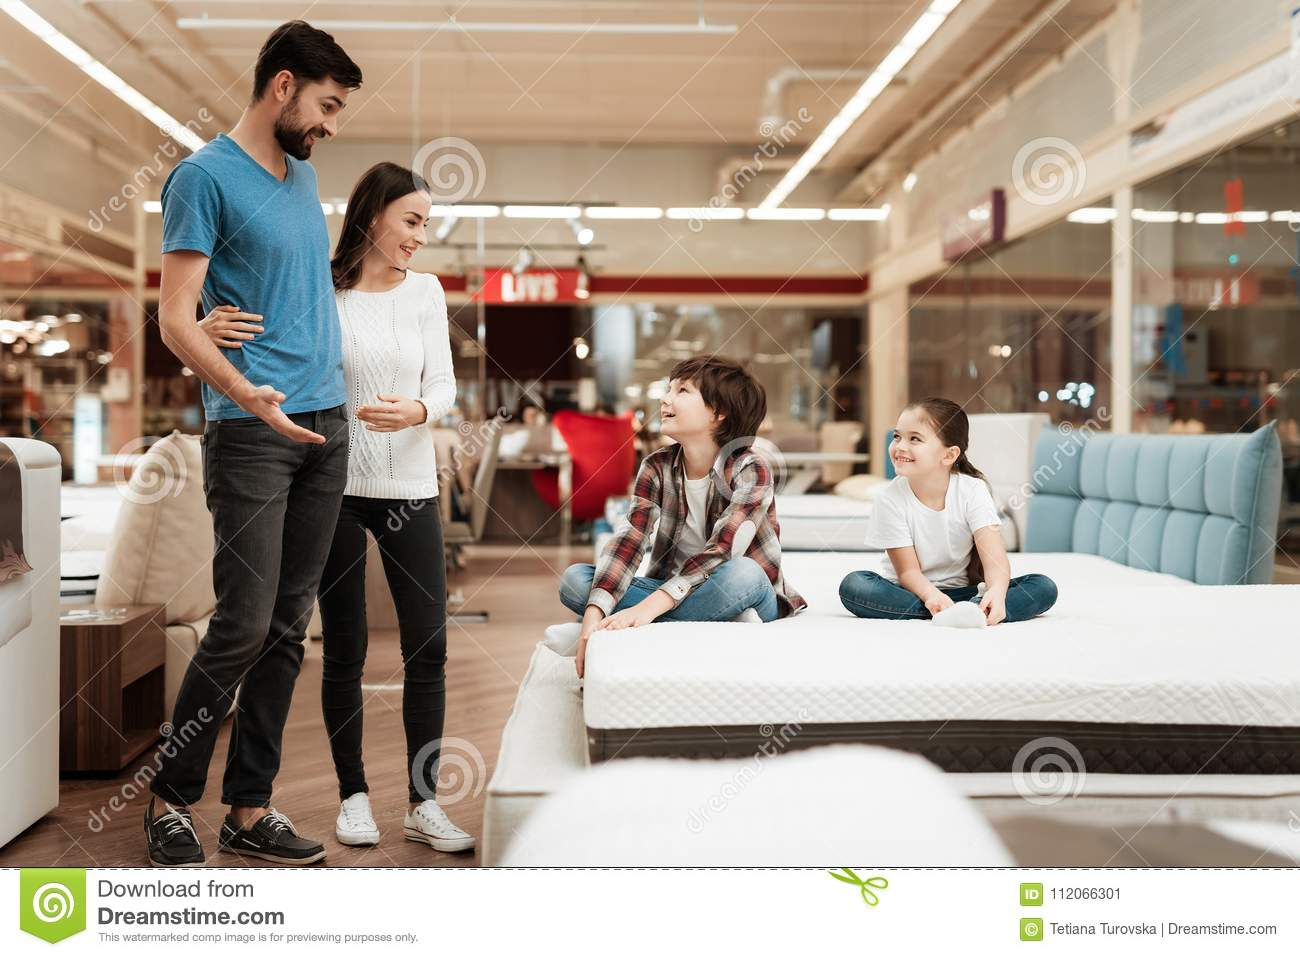 Happy family with children came in furniture store to buy mattress. Choosing mattress in store